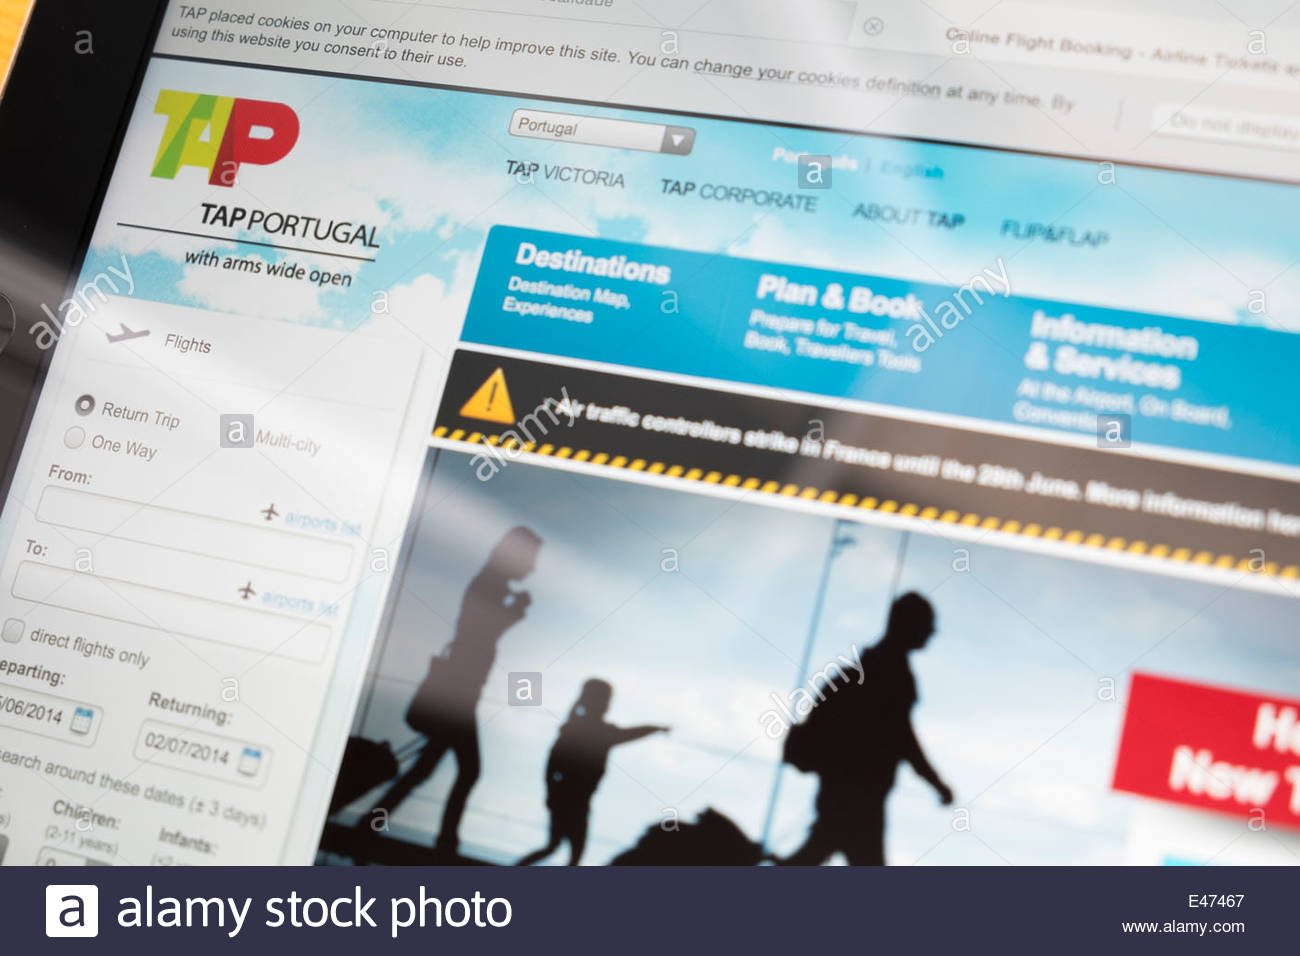 TAP Portugal website shown on Ipad screen - Stock Image